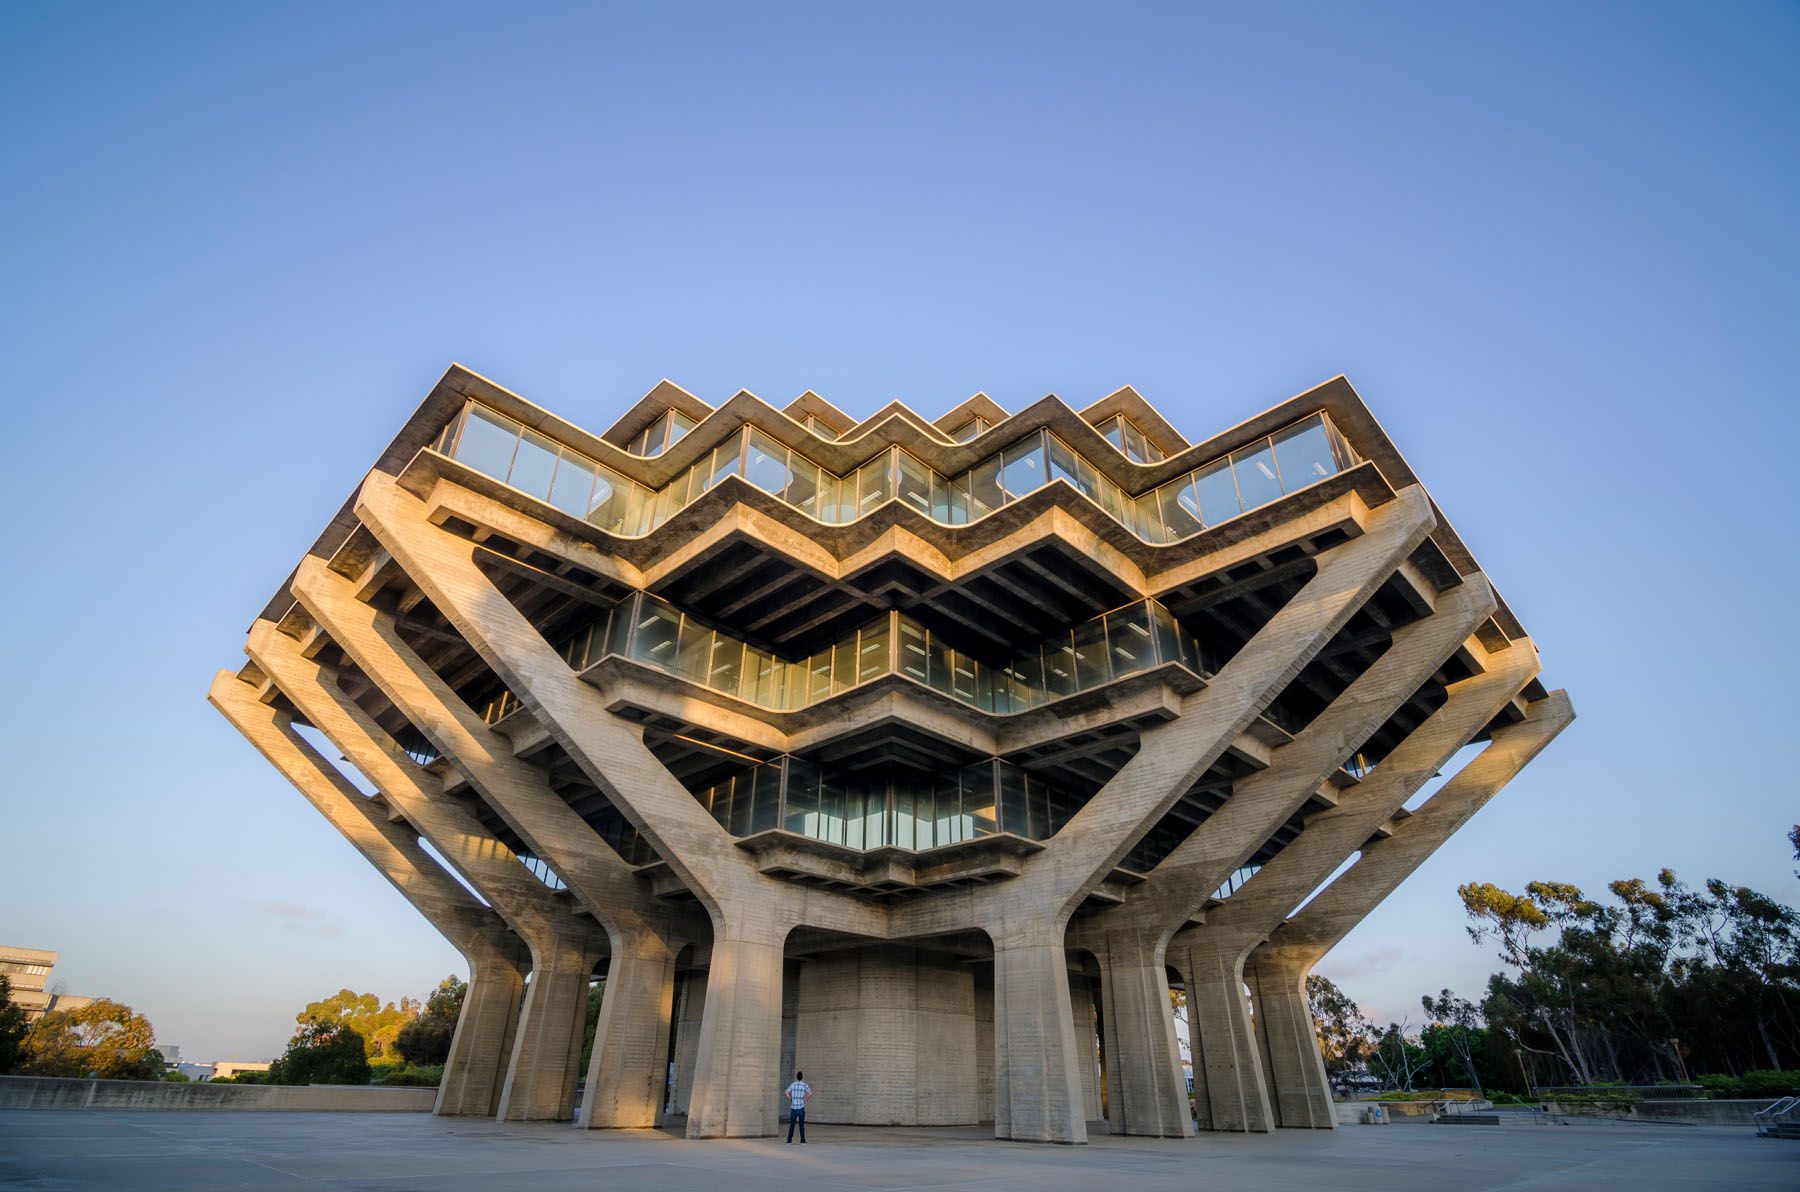 Perhaps the most well-respected example of Brutalist architecture, the library was constructed between 1968 and 1970.